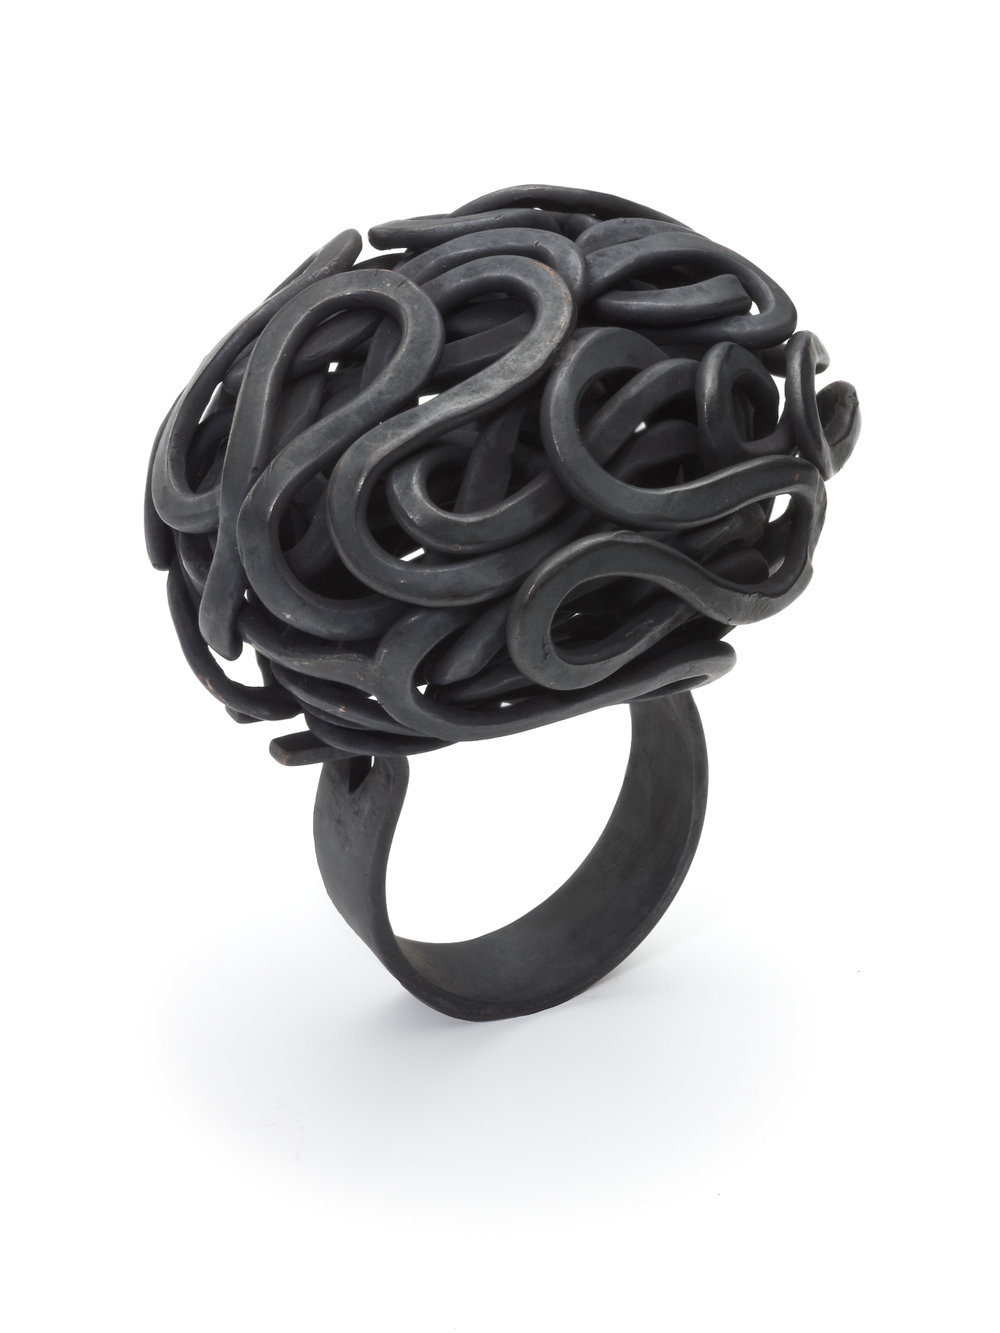 'Weaving Contemporary Art Jewellery 2013, Sculptural Form Ring, Hand Forged Oxidised Copper    Also in Sterling Silver